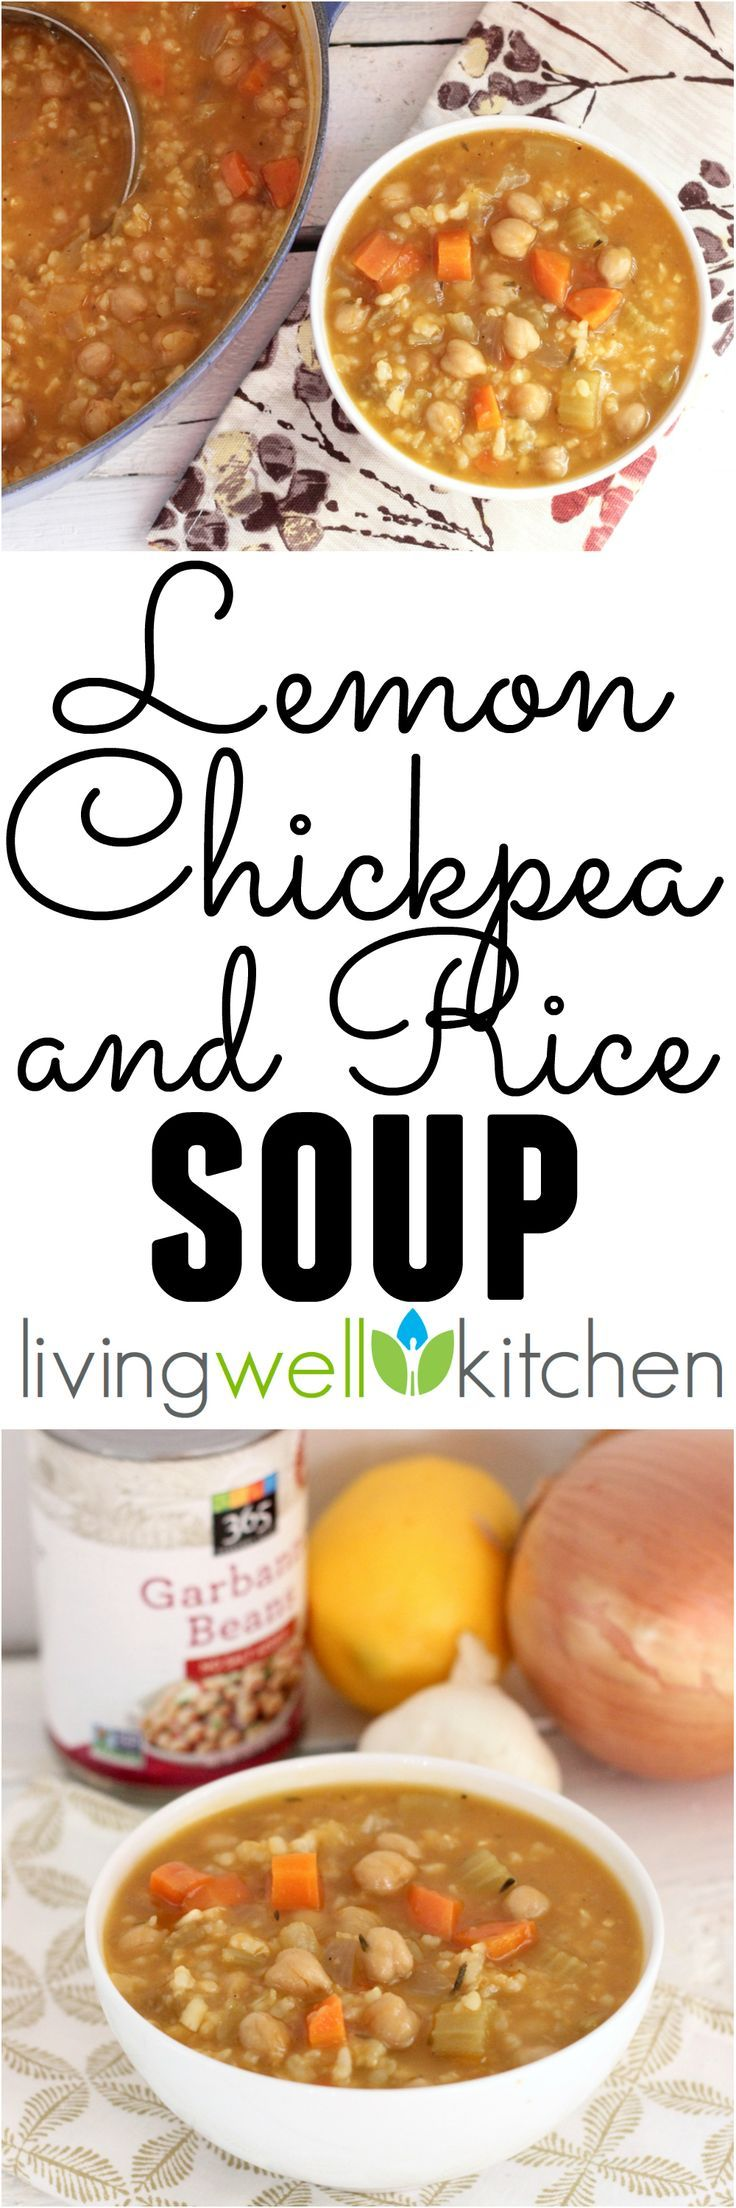 A tasty, budget friendly soup that's vegan, freezes well and makes everyone happy! Lemon Chickpea and Rice Soup recipe from @memeinge